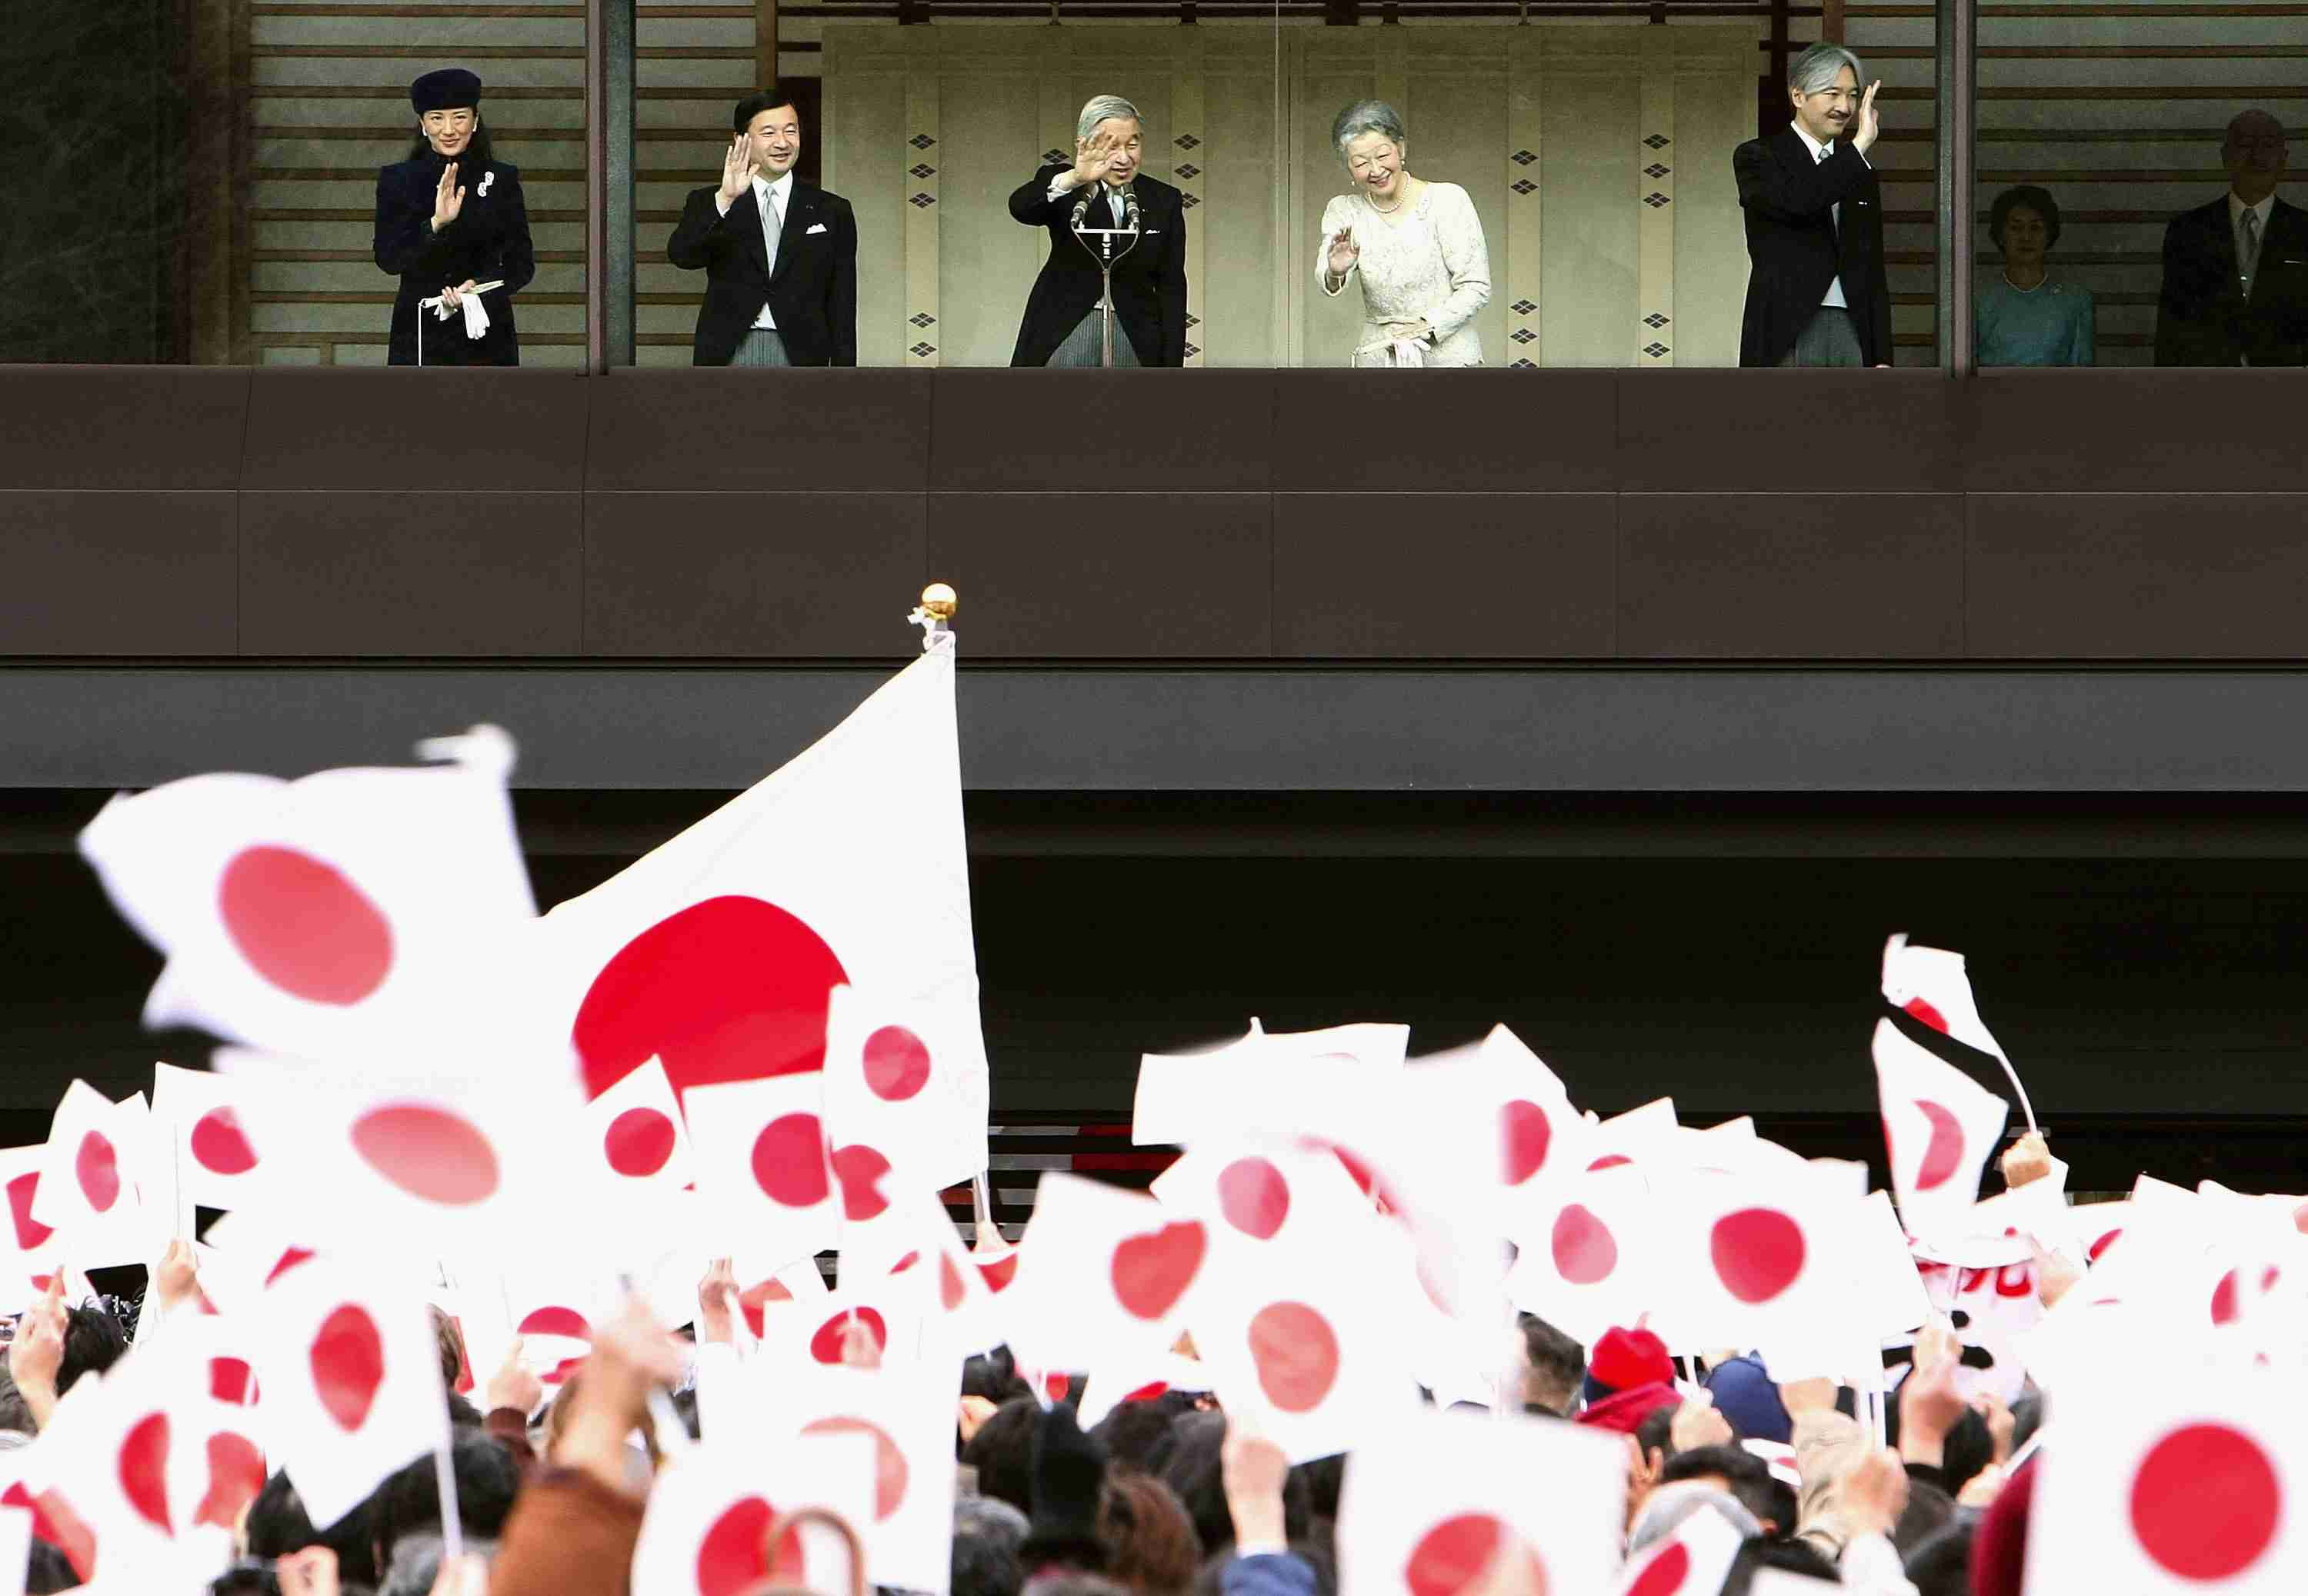 A crowd waving flags for the Emperor's Birthday Celebration in Japan